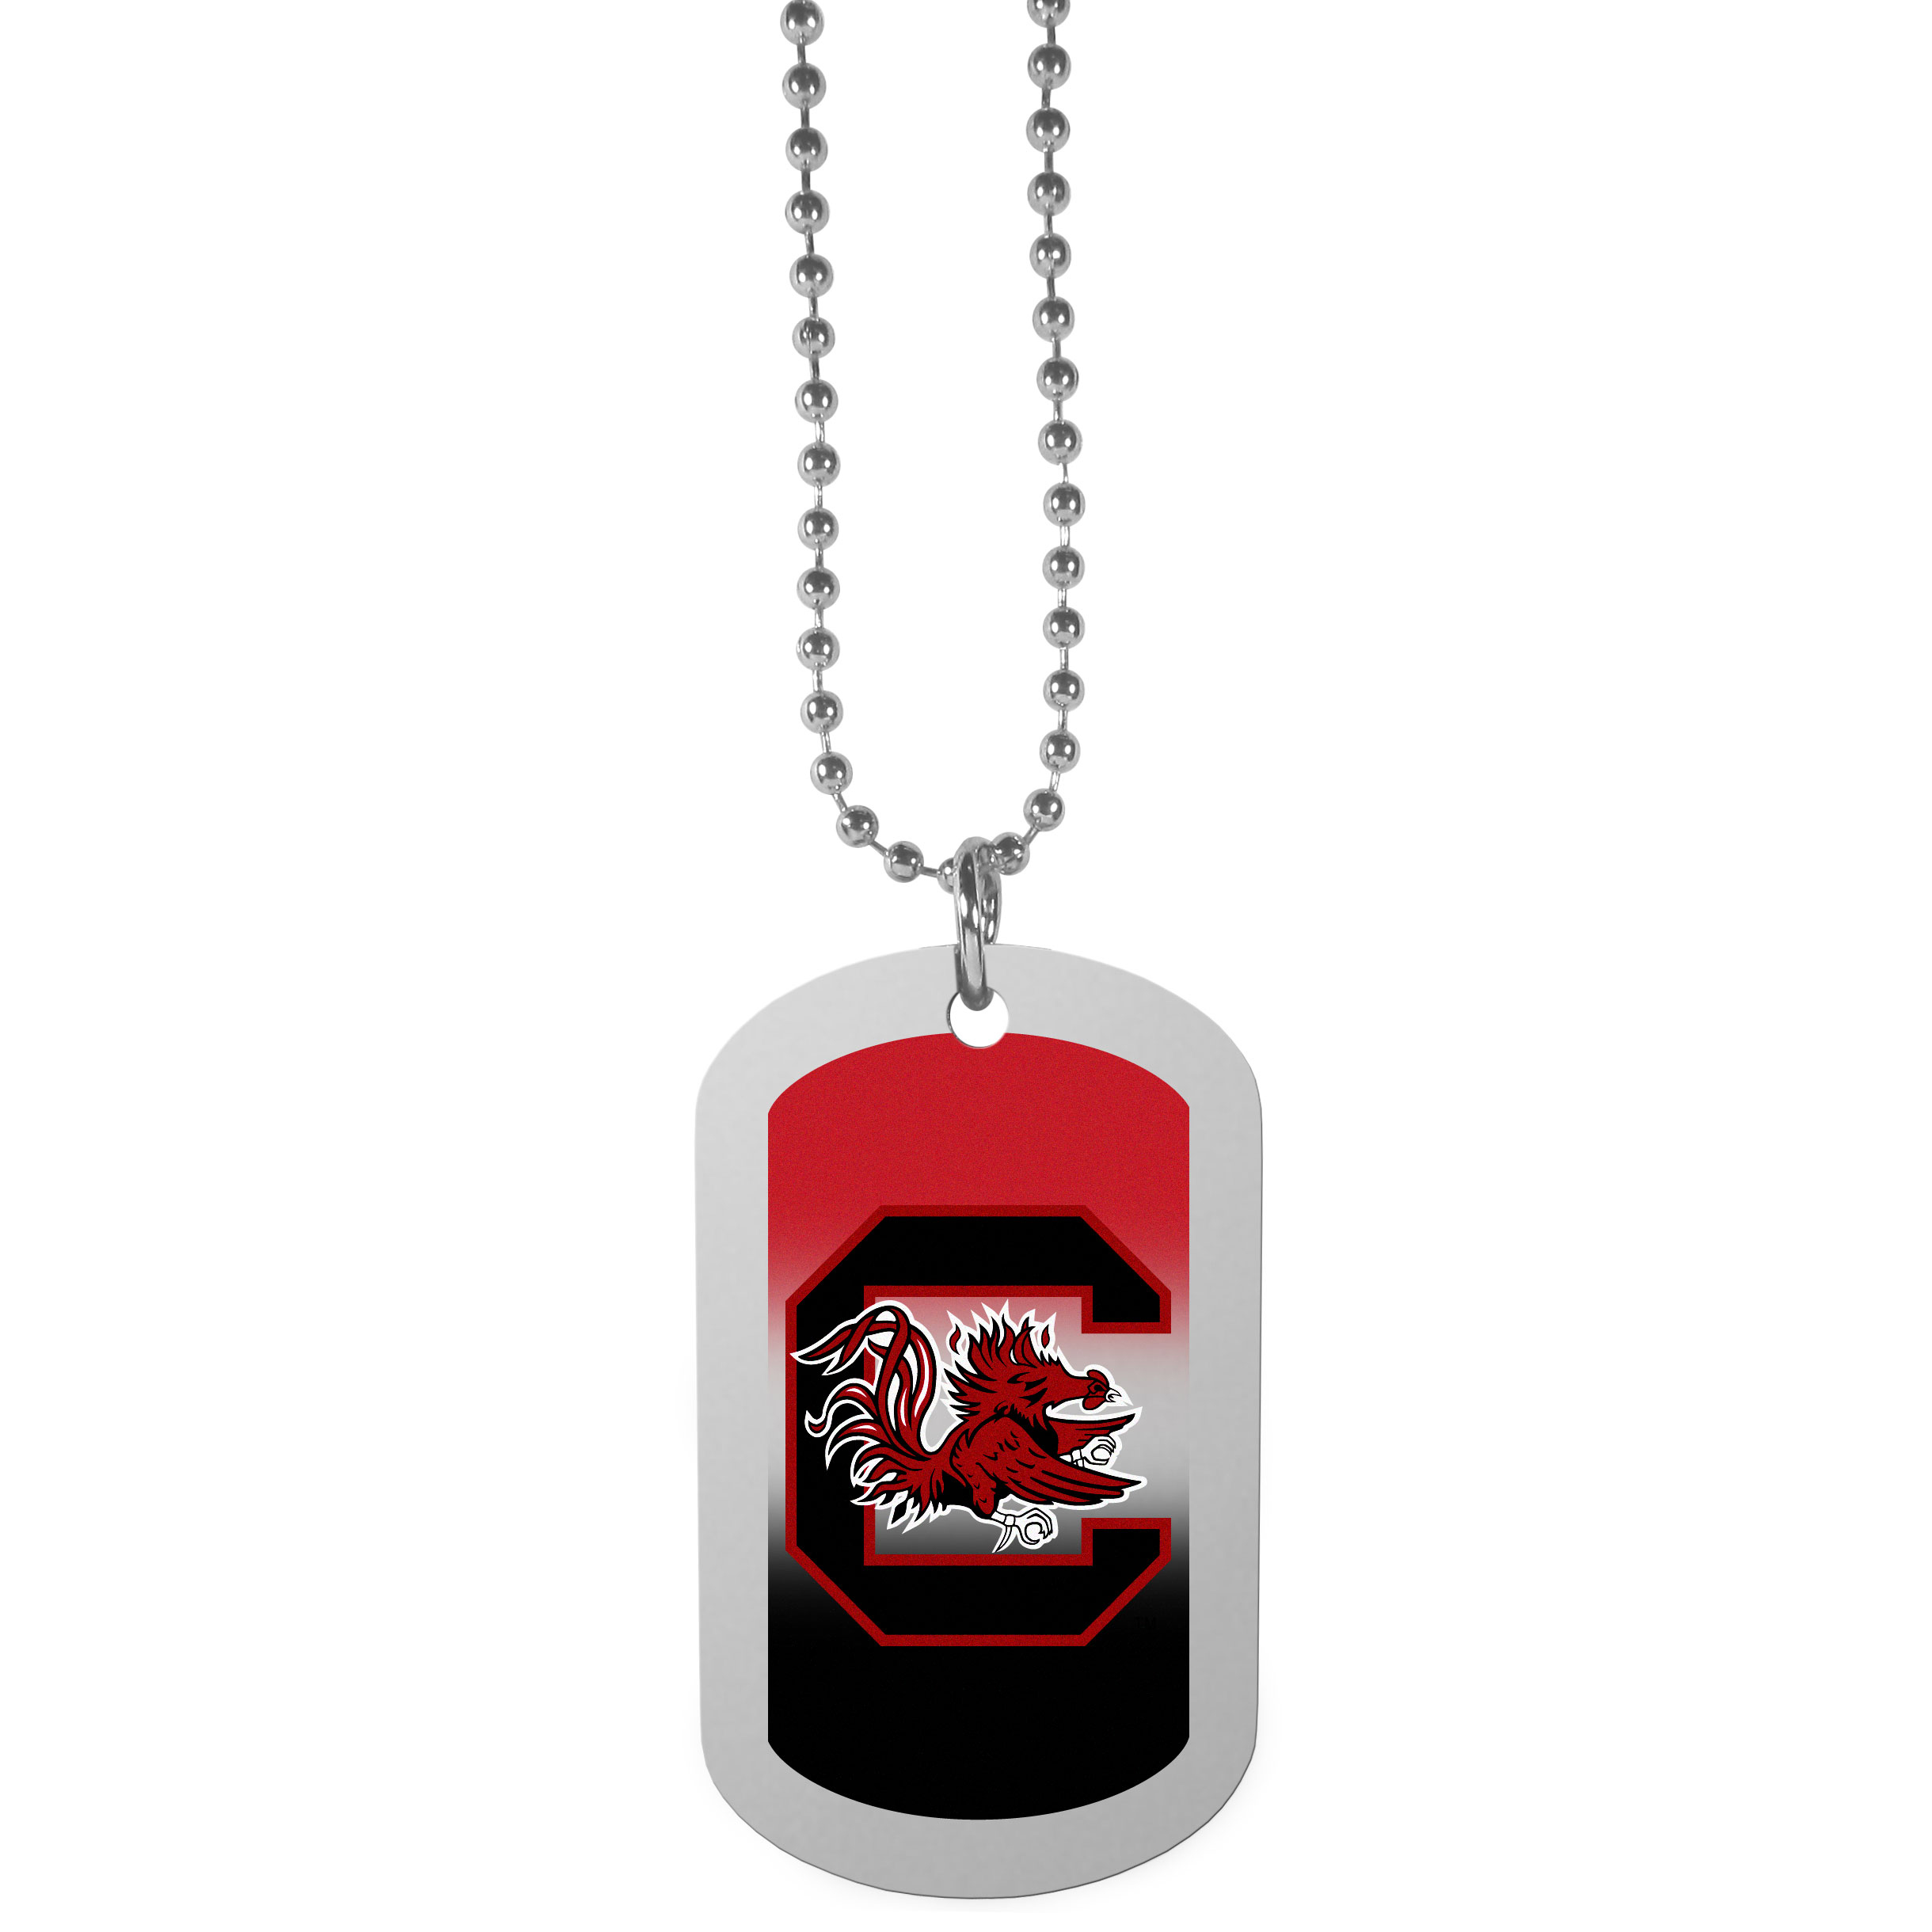 S. Carolina Gamecocks Team Tag Necklace - Dog tag necklaces are a fashion statement that is here to stay. The sporty version of the classic tag features a gradient print in team colors featuring a full color team logo over a high polish tag to create a bold and sporty look. The tag comes on a 26 inch ball chain with a ball and joint clasp. Any S. Carolina Gamecocks would be proud to wear this attractive fashion accessory.